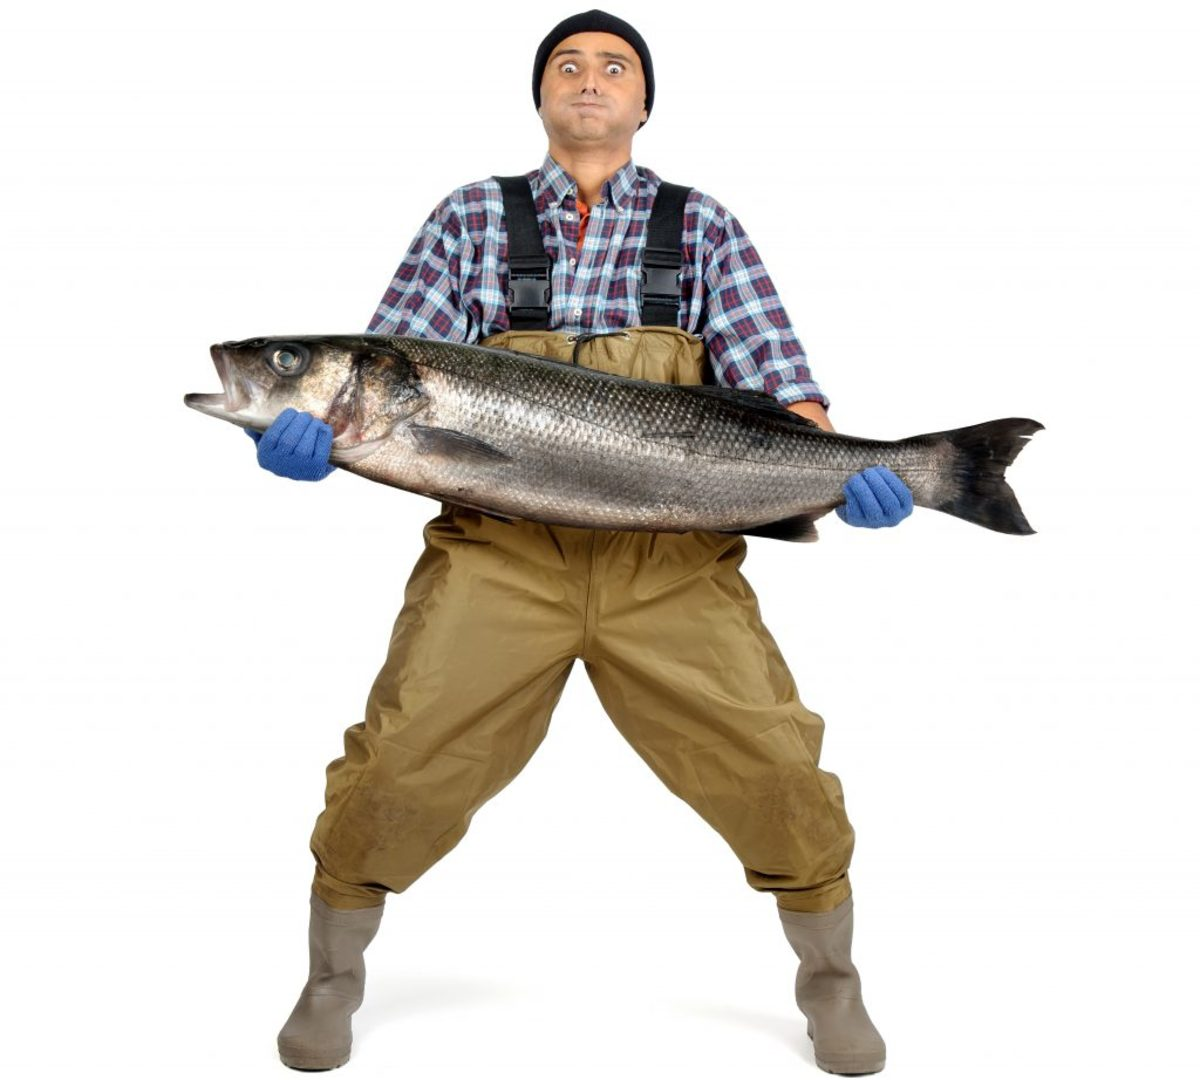 Looking to catch a Big Fish? A rep, meeting or sale? Barri Evins' advice on creating an irresistible lure: the ultimate bait that gets the industry to bite. #scriptchat #screenwriting